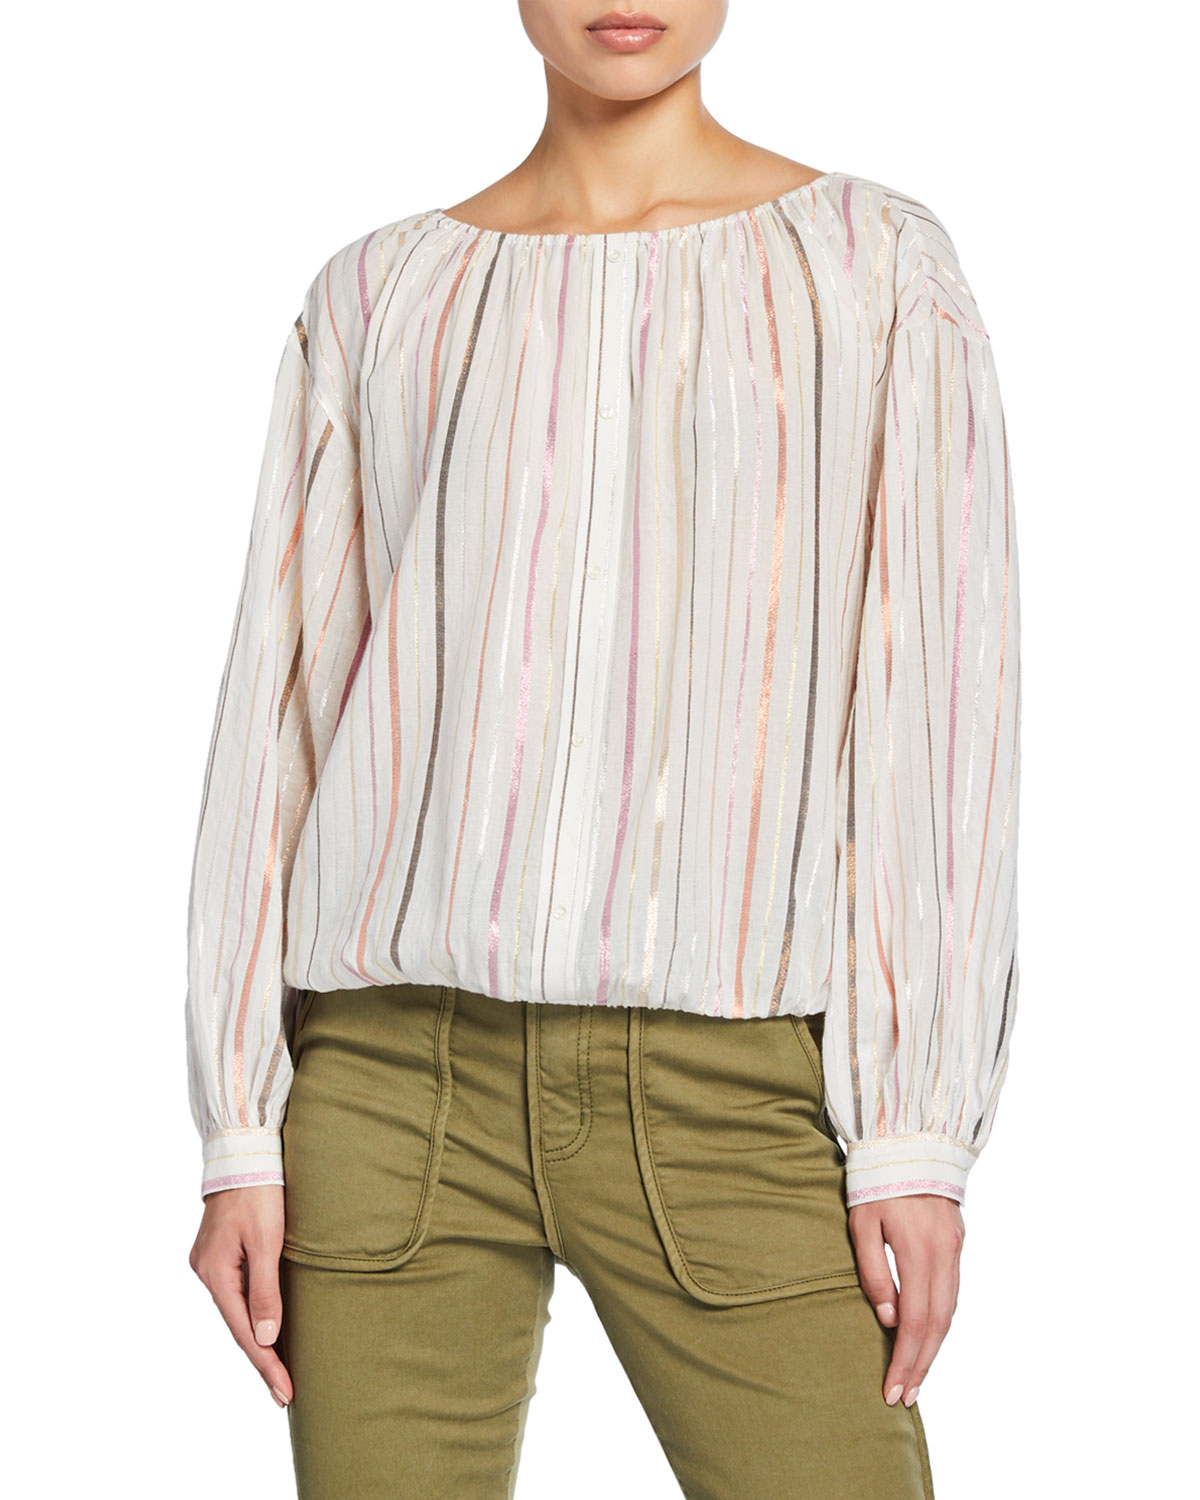 Joie Tops SATOMI METALLIC STRIPE LONG-SLEEVE COTTON TOP